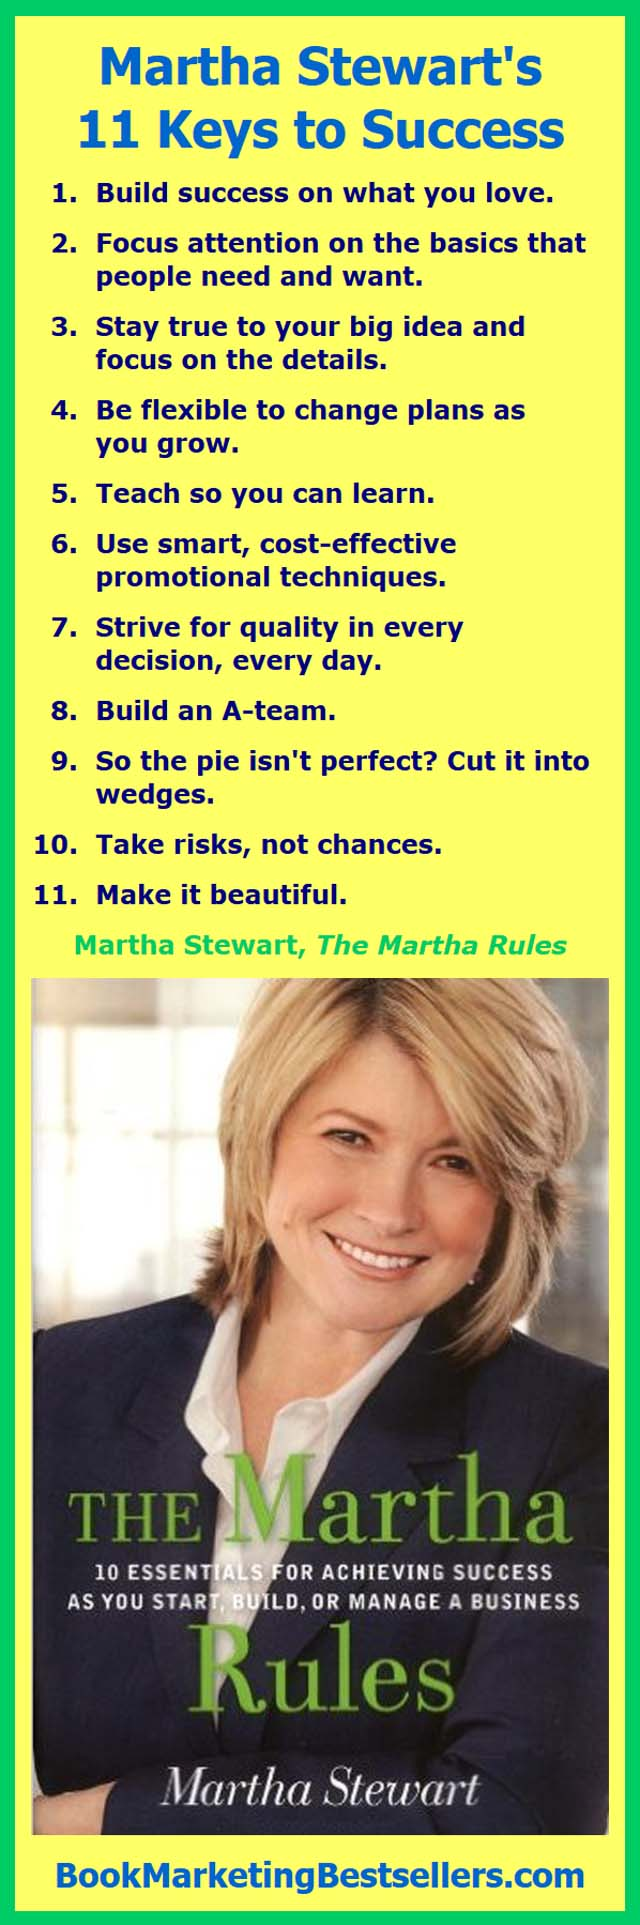 Martha Stewart's Rules for Success: Build success on what you love. Focus attention on the basics that people need and want. Stay true to your big idea and focus on the details...